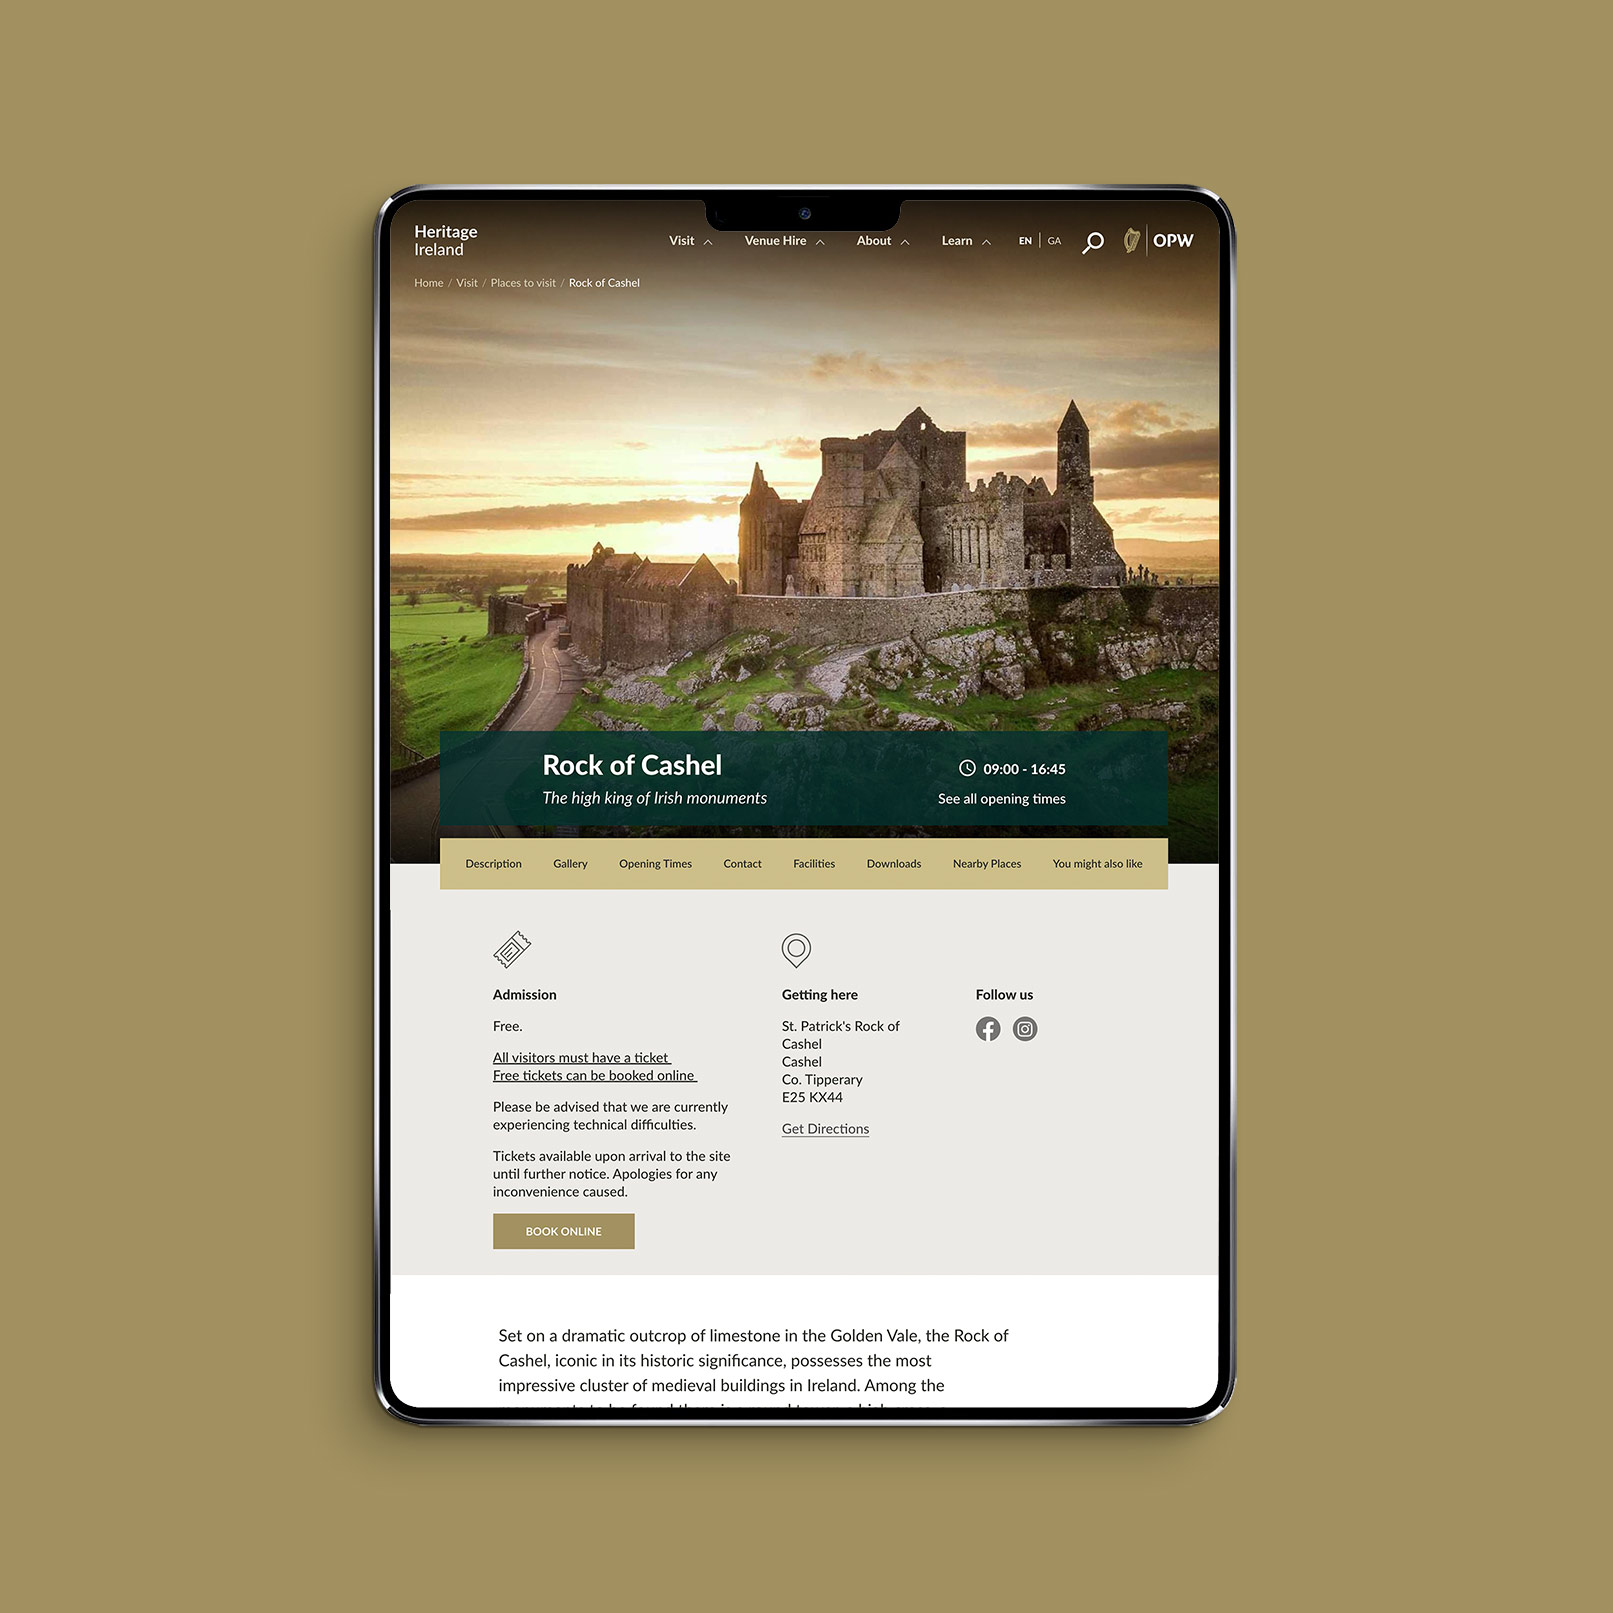 Image of the Rock of Cashel page on the Heritage Ireland website